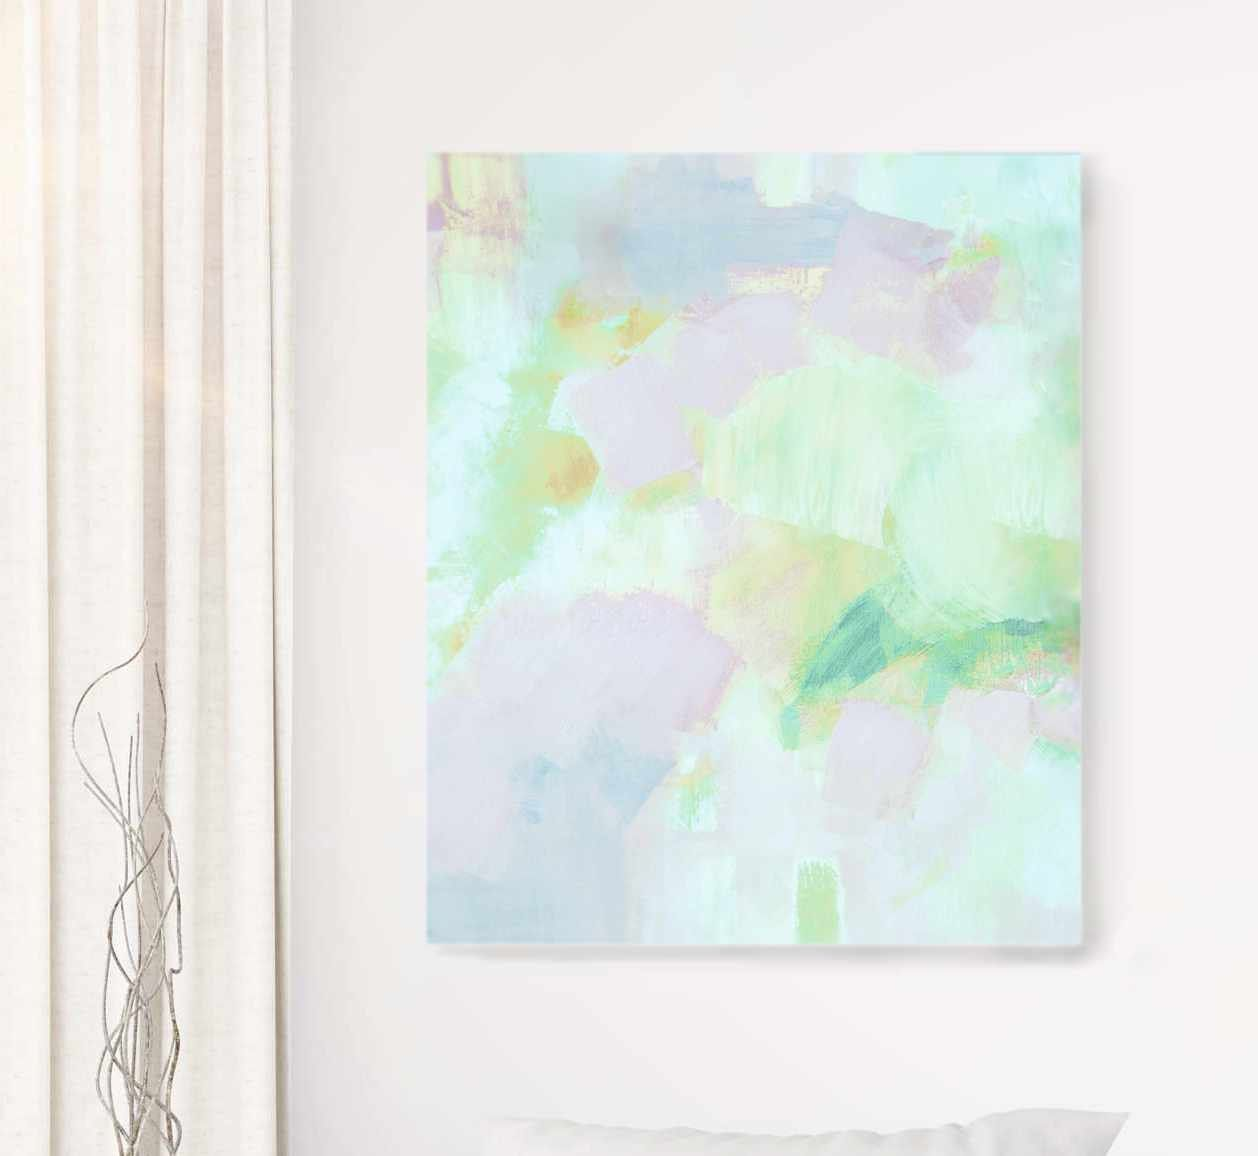 Pale Mint Sky Abstract Fine Art Print Embellished Canvas Soft Grey Wall Art Office Decor Uk Grey Wall Art Abstract Fine Art Prints